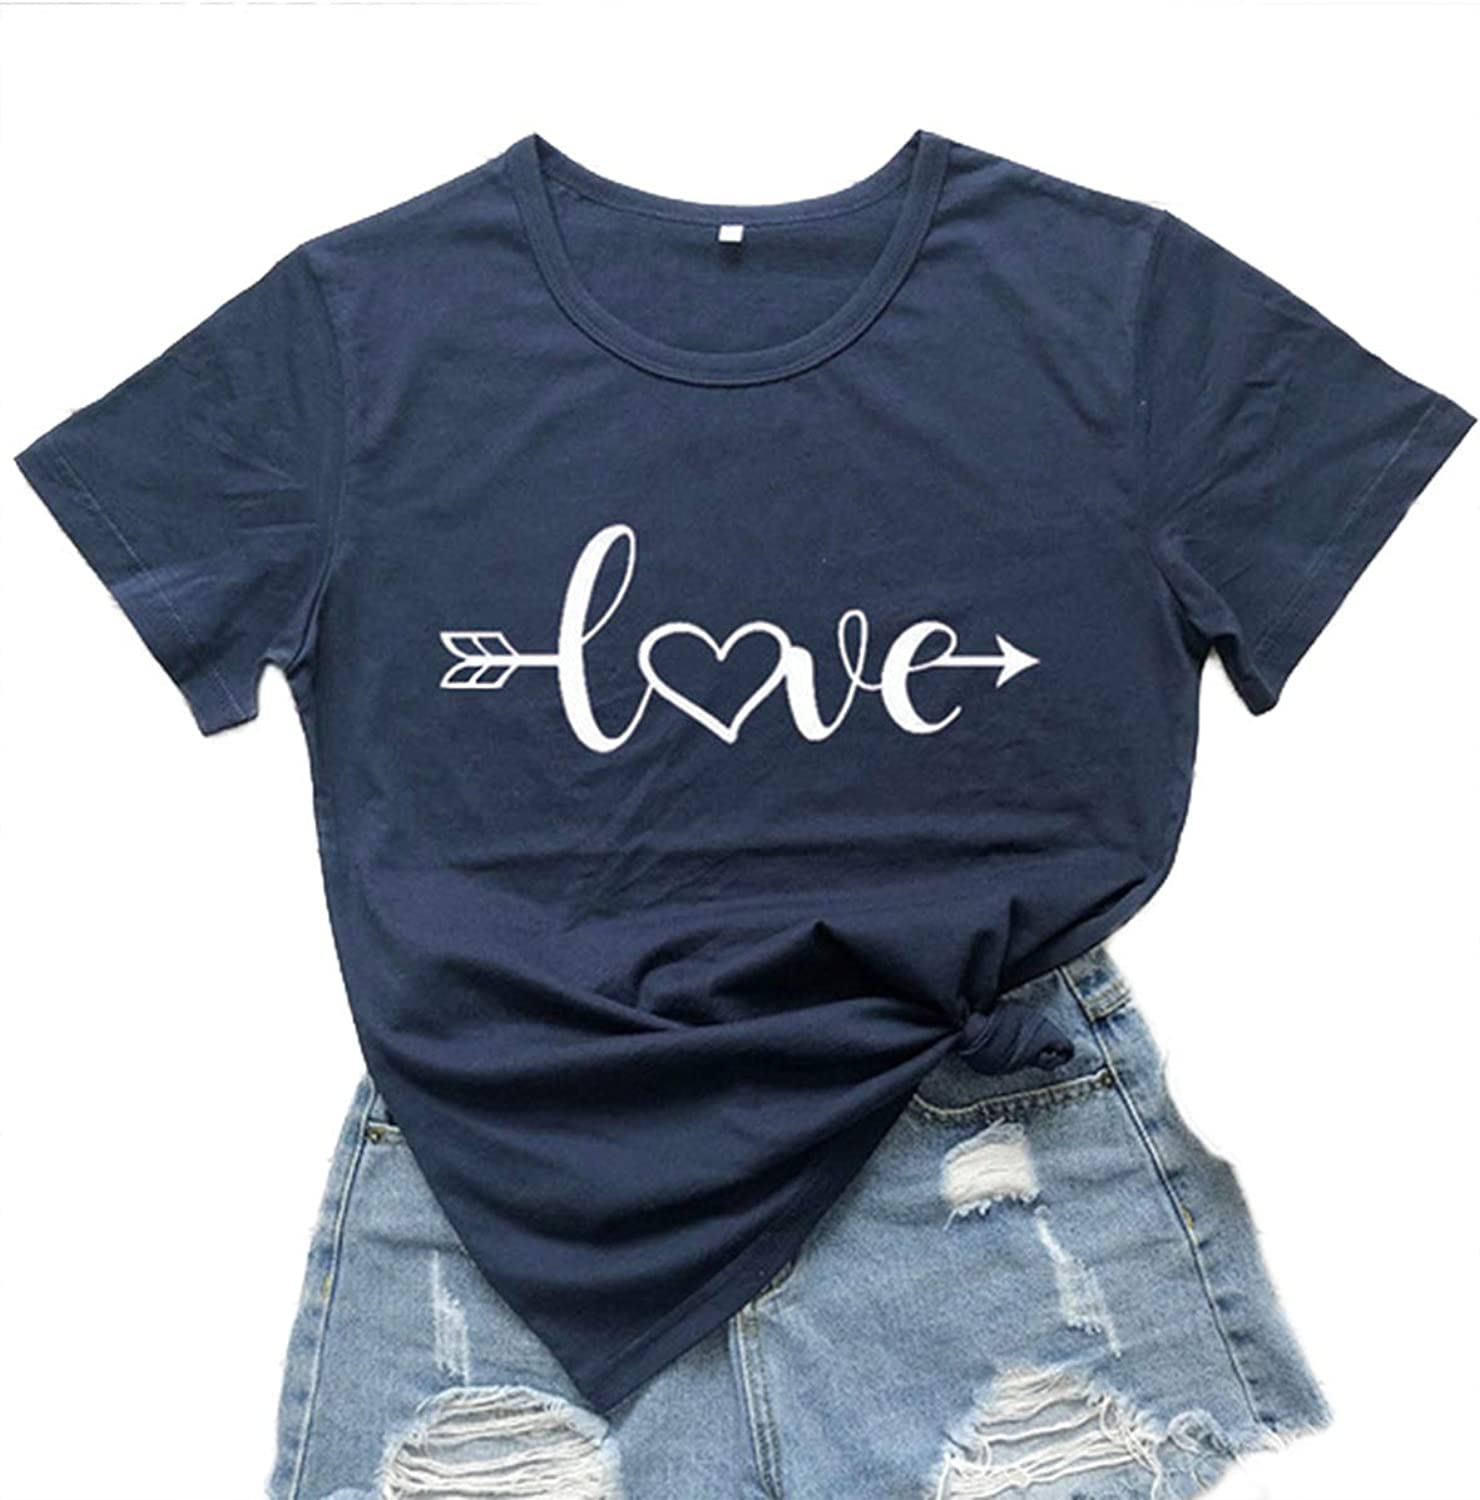 FOBEXISS Womens Valentine/'s Day Shirt Love Letter Printed Short Sleeve Tee Tops Shirts